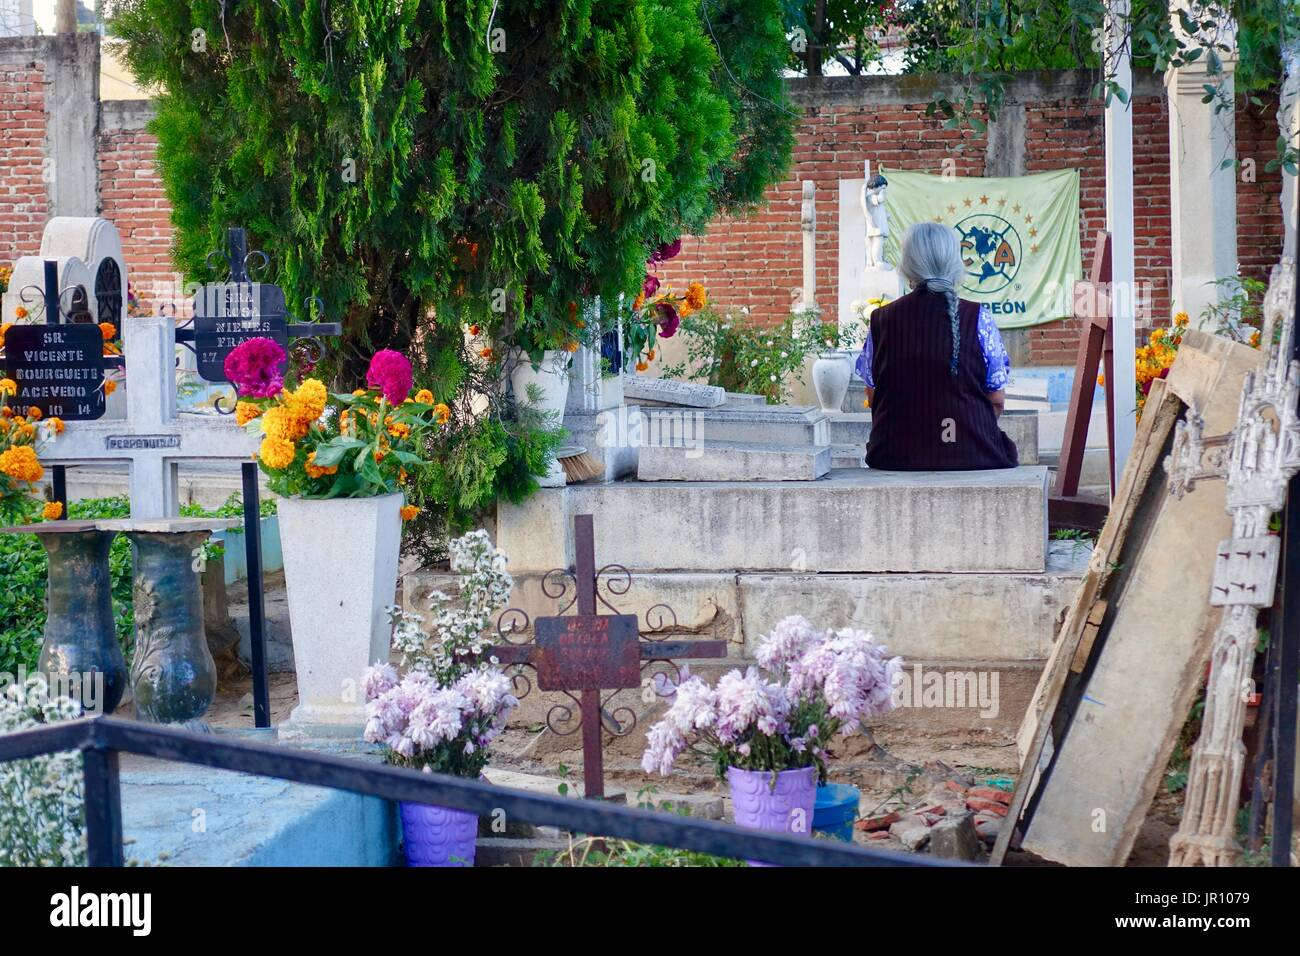 Elderly woman with long gray brain, back to camera, sits in contemplation on raised grave stones in cemetery during Muertos. Oaxaca Centro, Mexico. - Stock Image